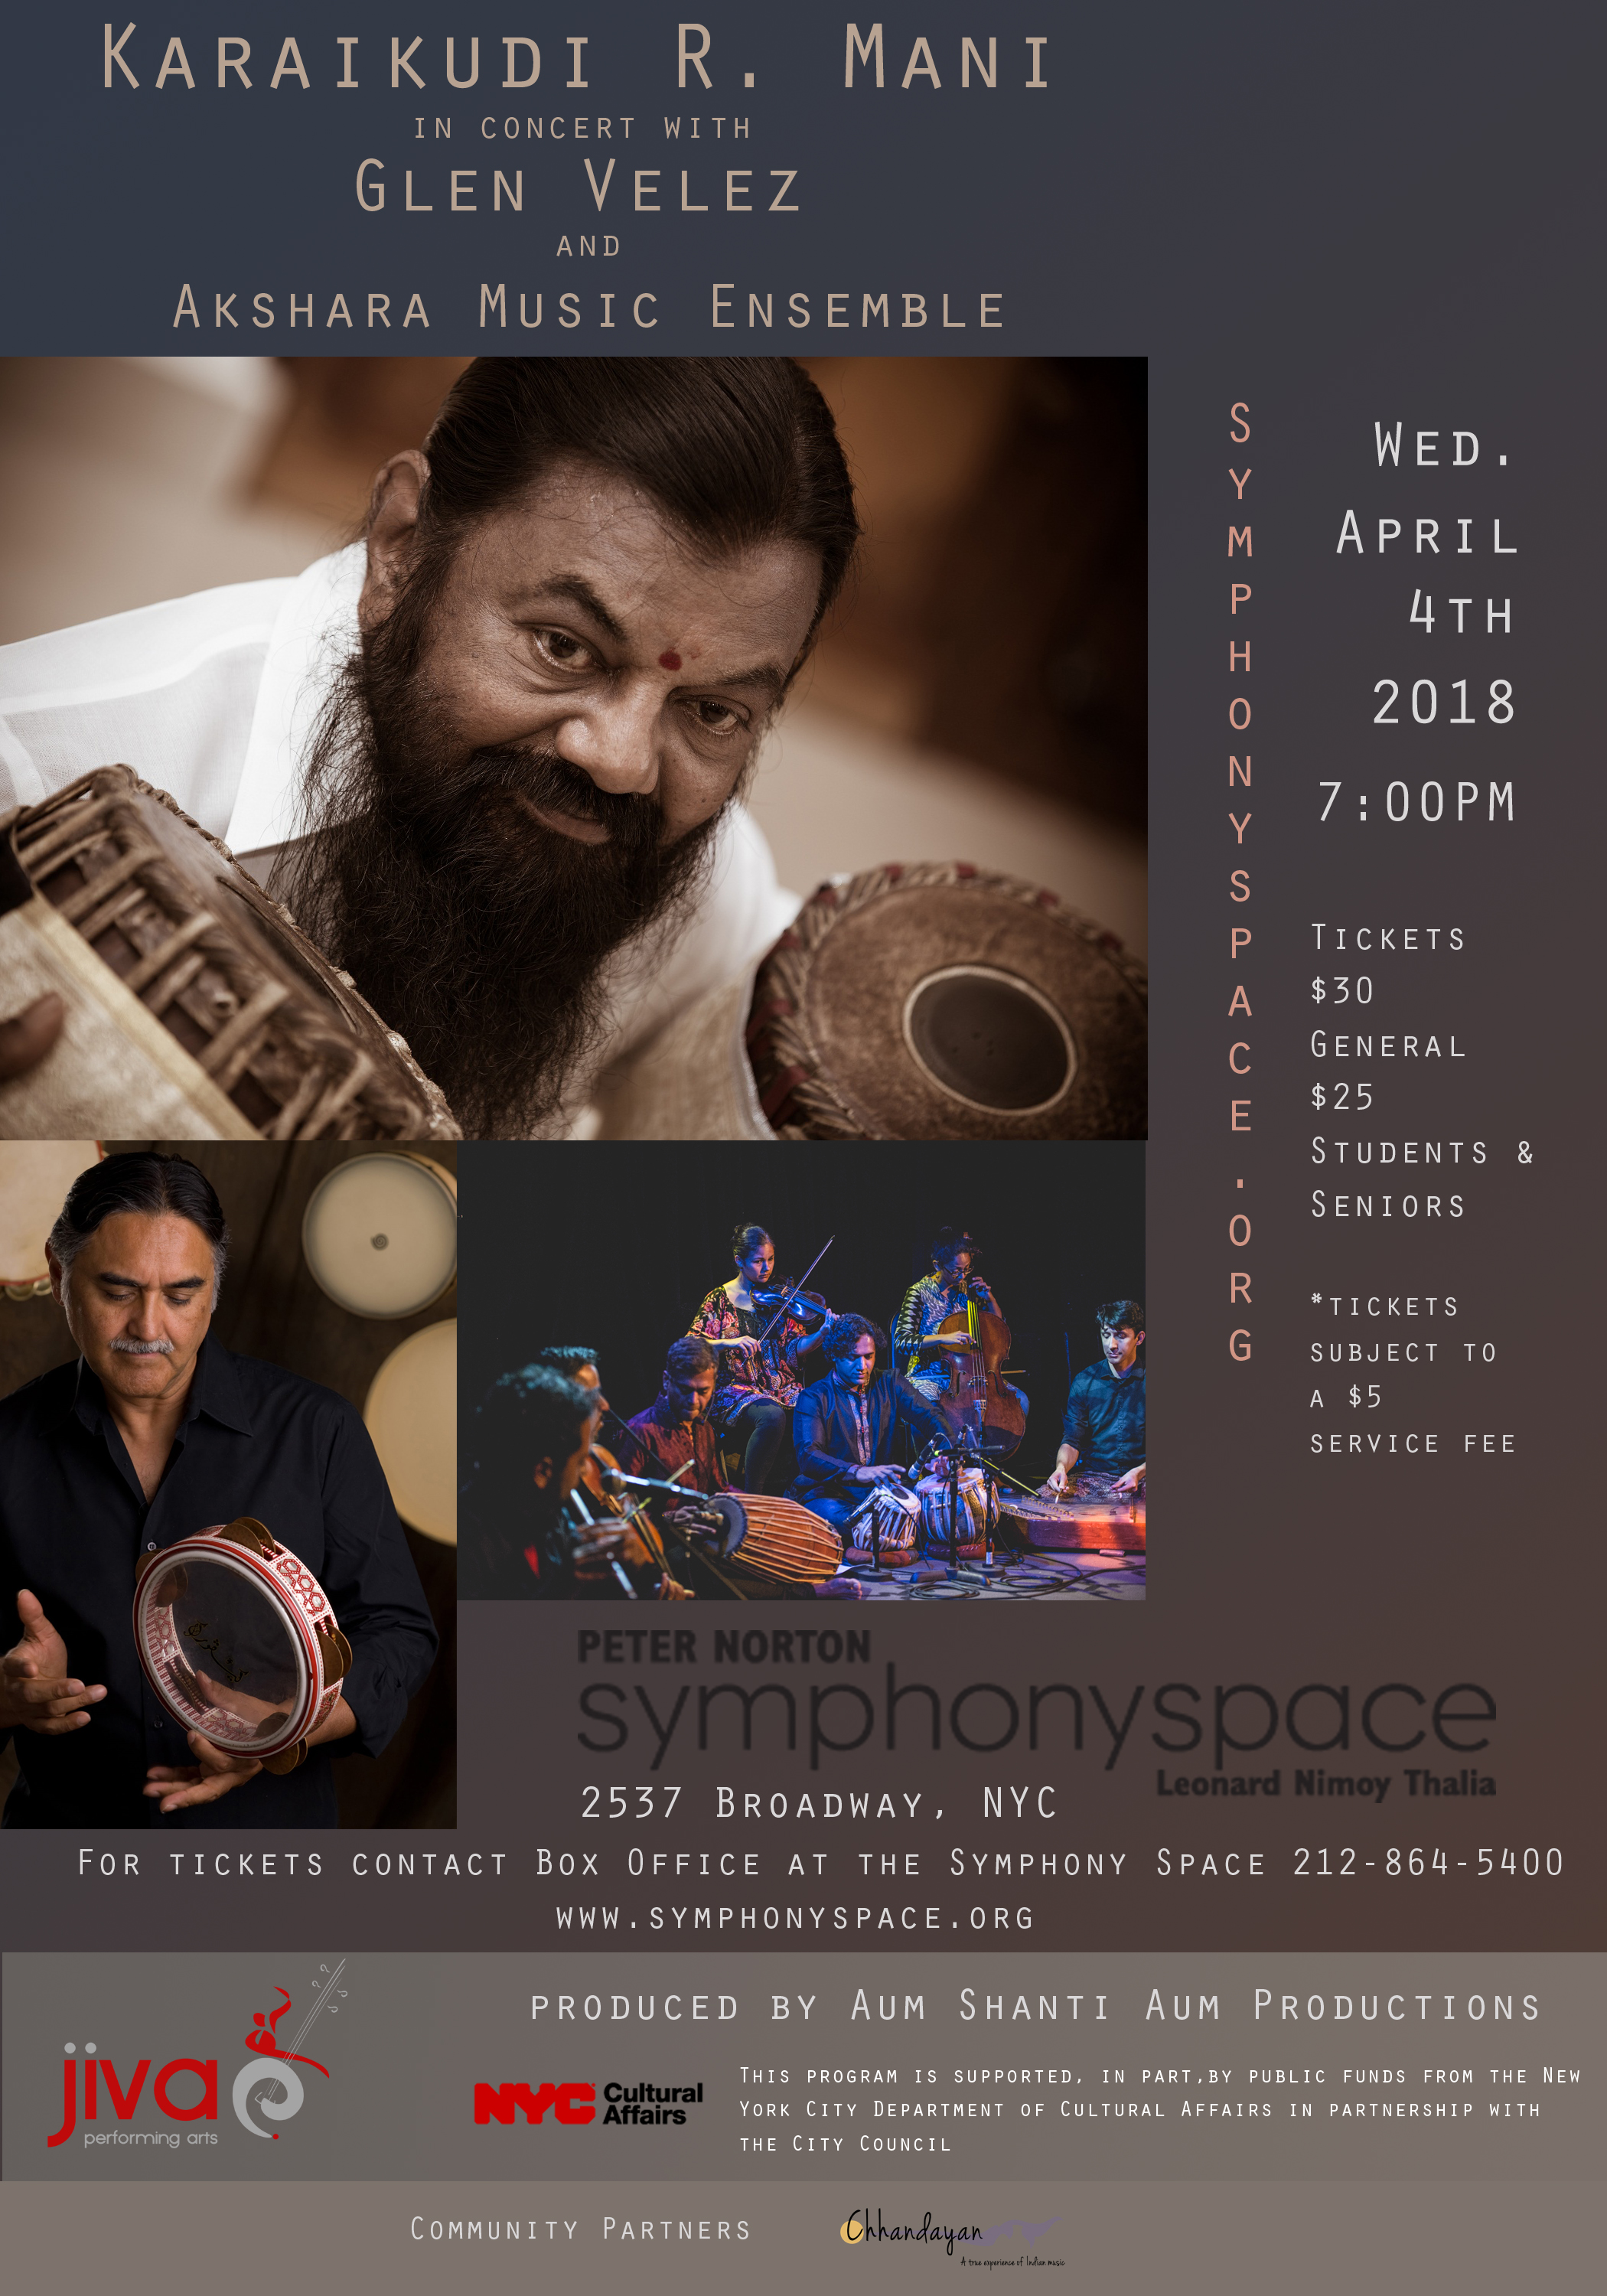 Mridangam Maestro Karaikudi Mani and Glen Velez in Concert April 4th